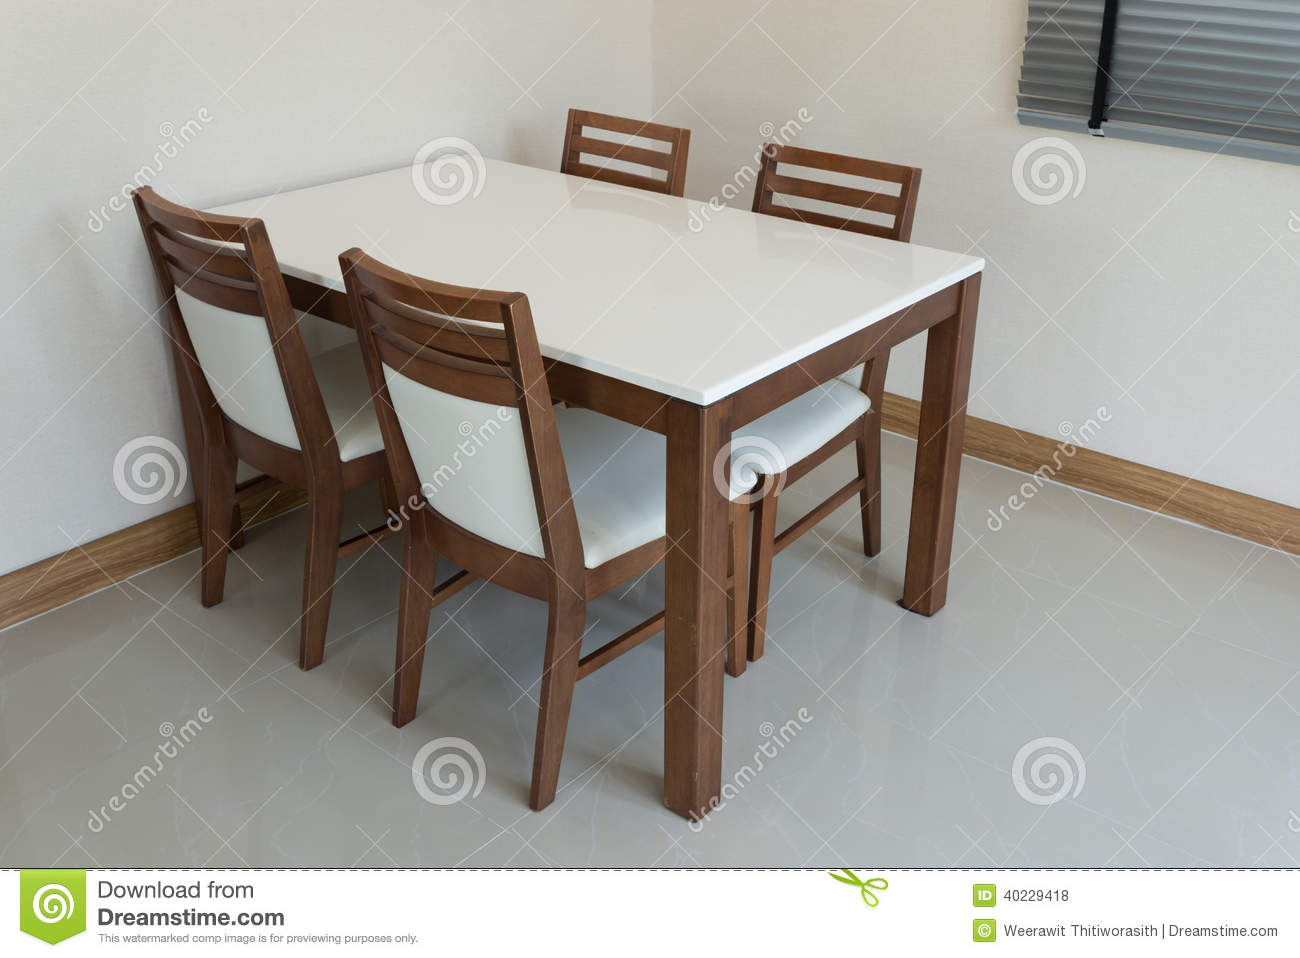 Table de salle manger en bois photo stock image 40229418 for Table salle a manger 4 personnes